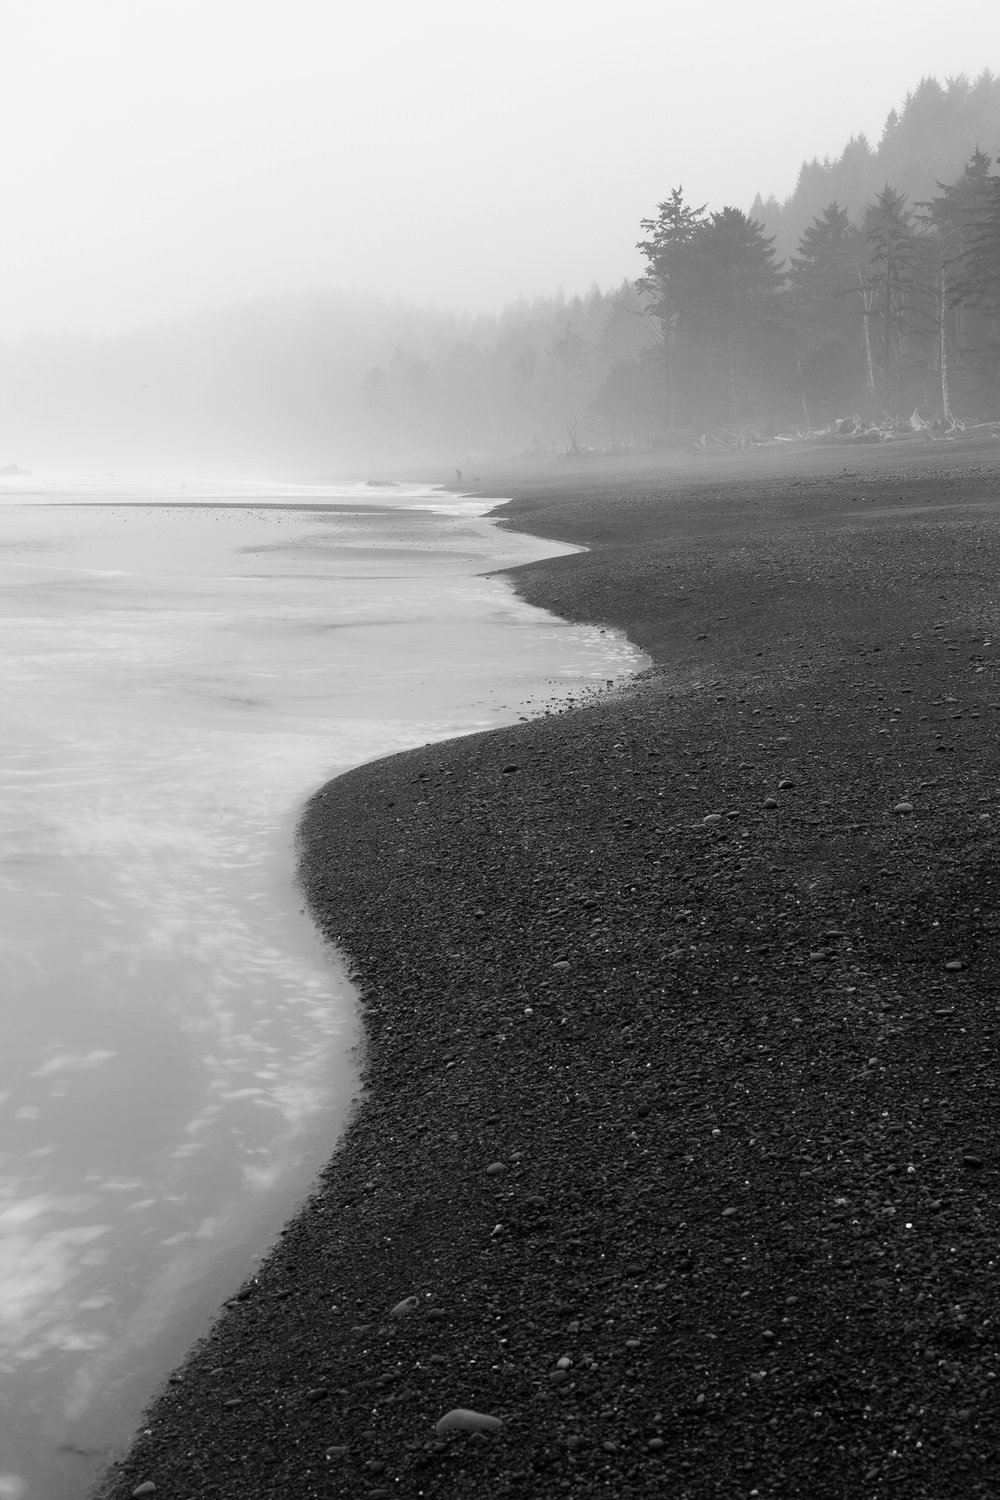 Foggy morning at Rialto Beach on the Olympic Penninsula